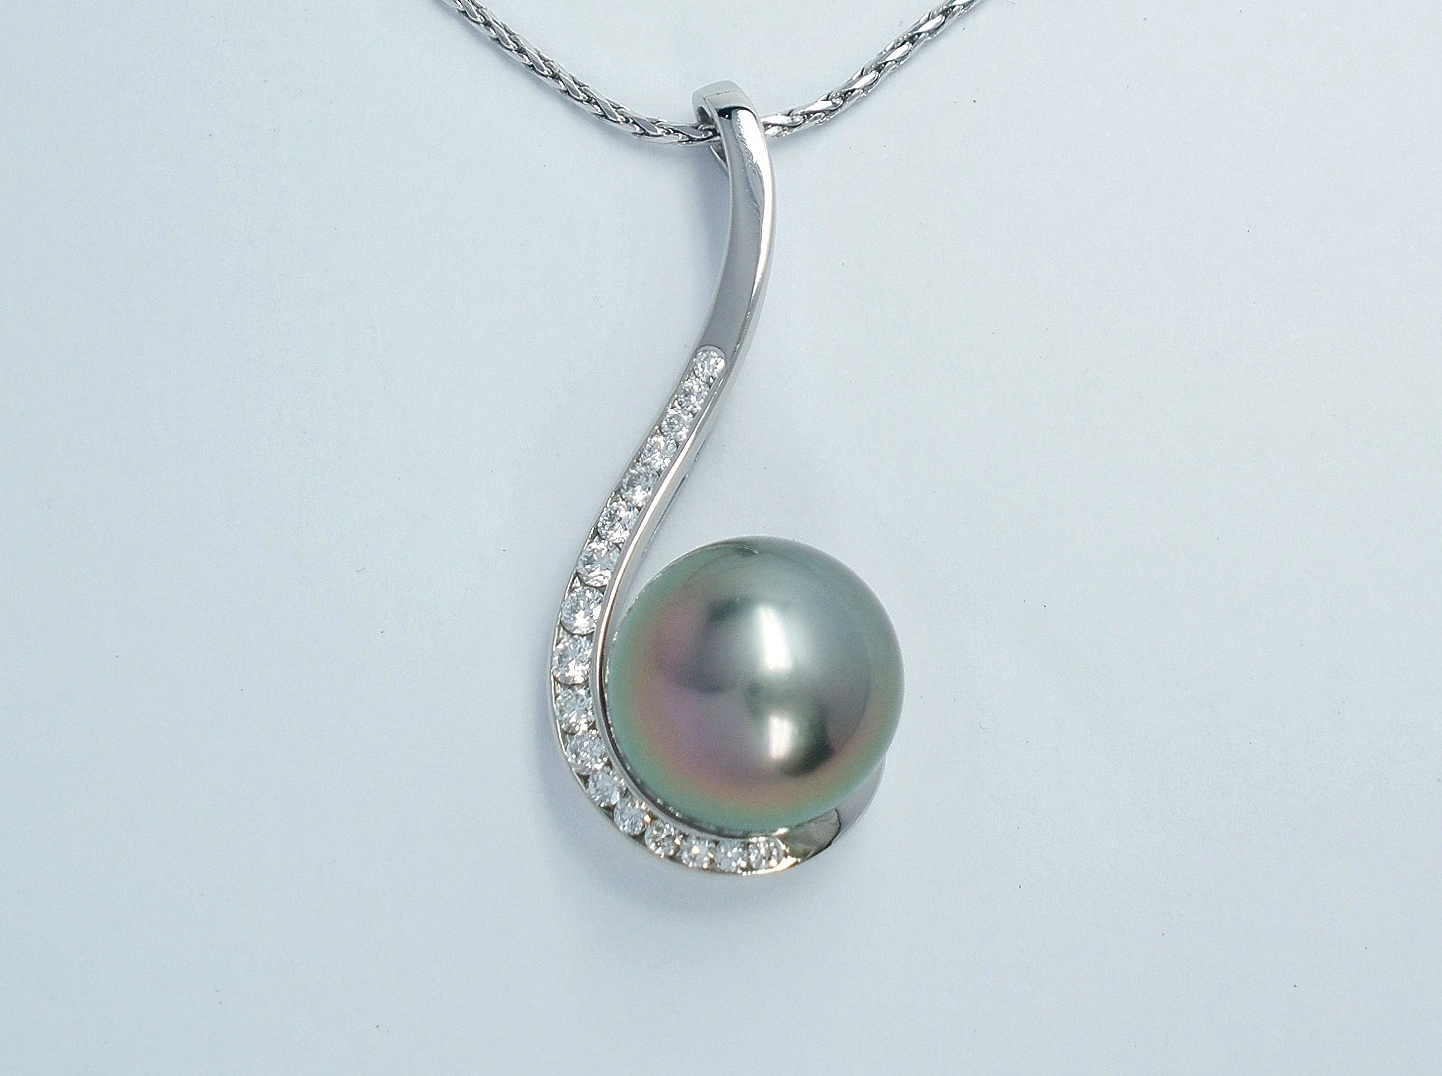 Black Tahitian pearl and round brilliant cut diamond pendant mounted in palladium.